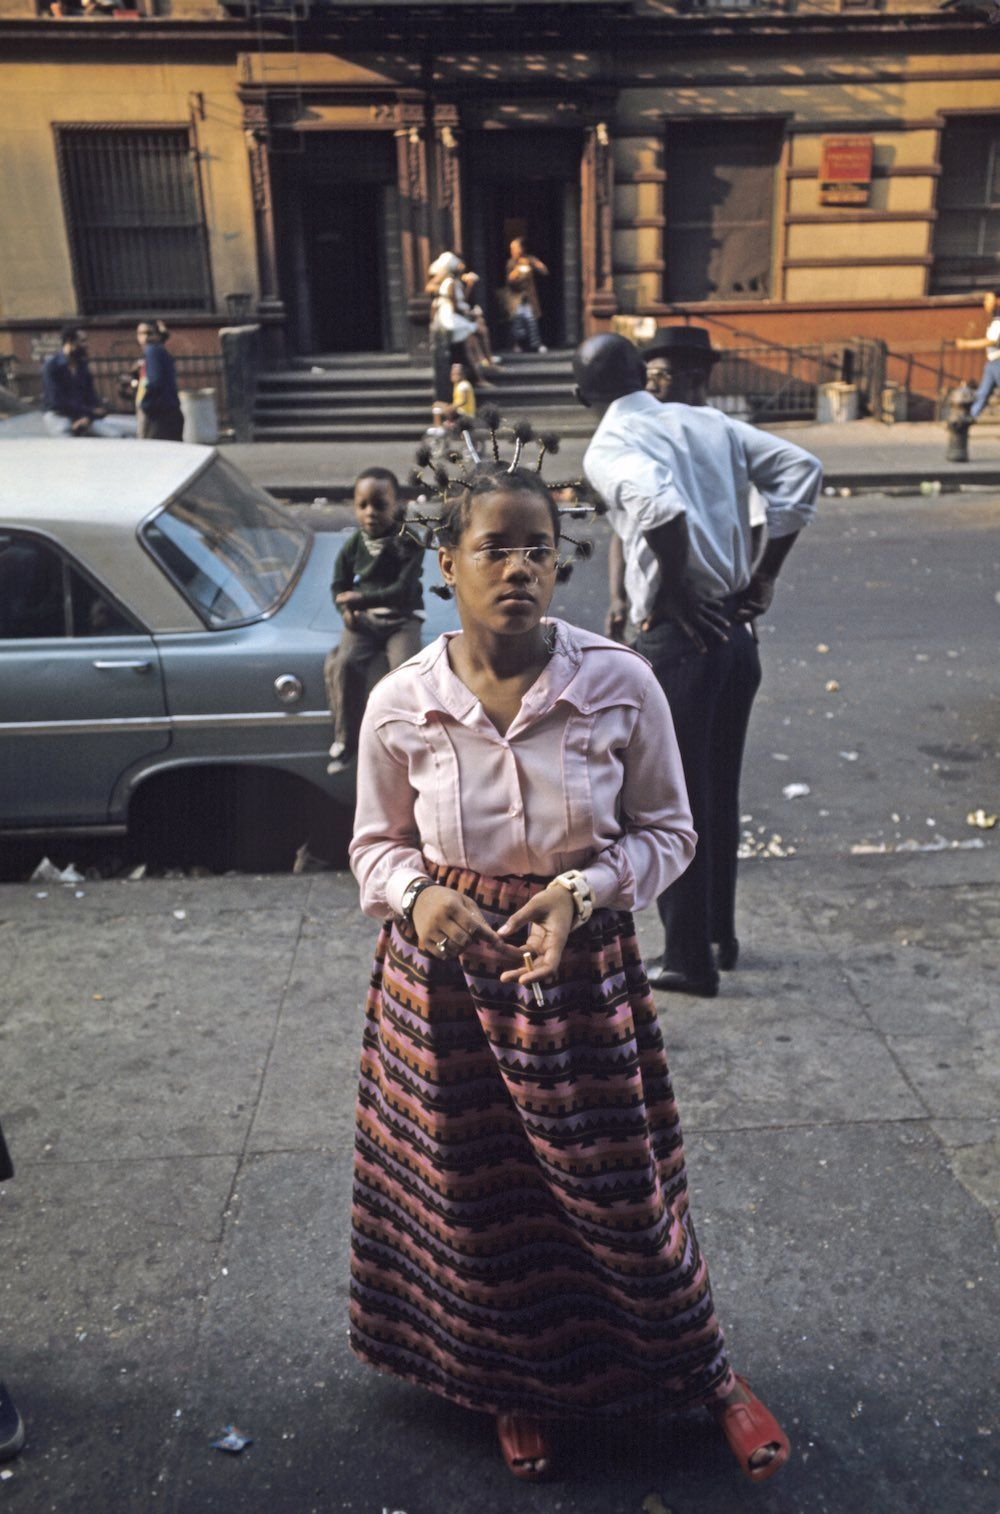 гарлем фото 70-е история гарлема harlem photo 70's jack garofalo отвратительные мужики disgusting men